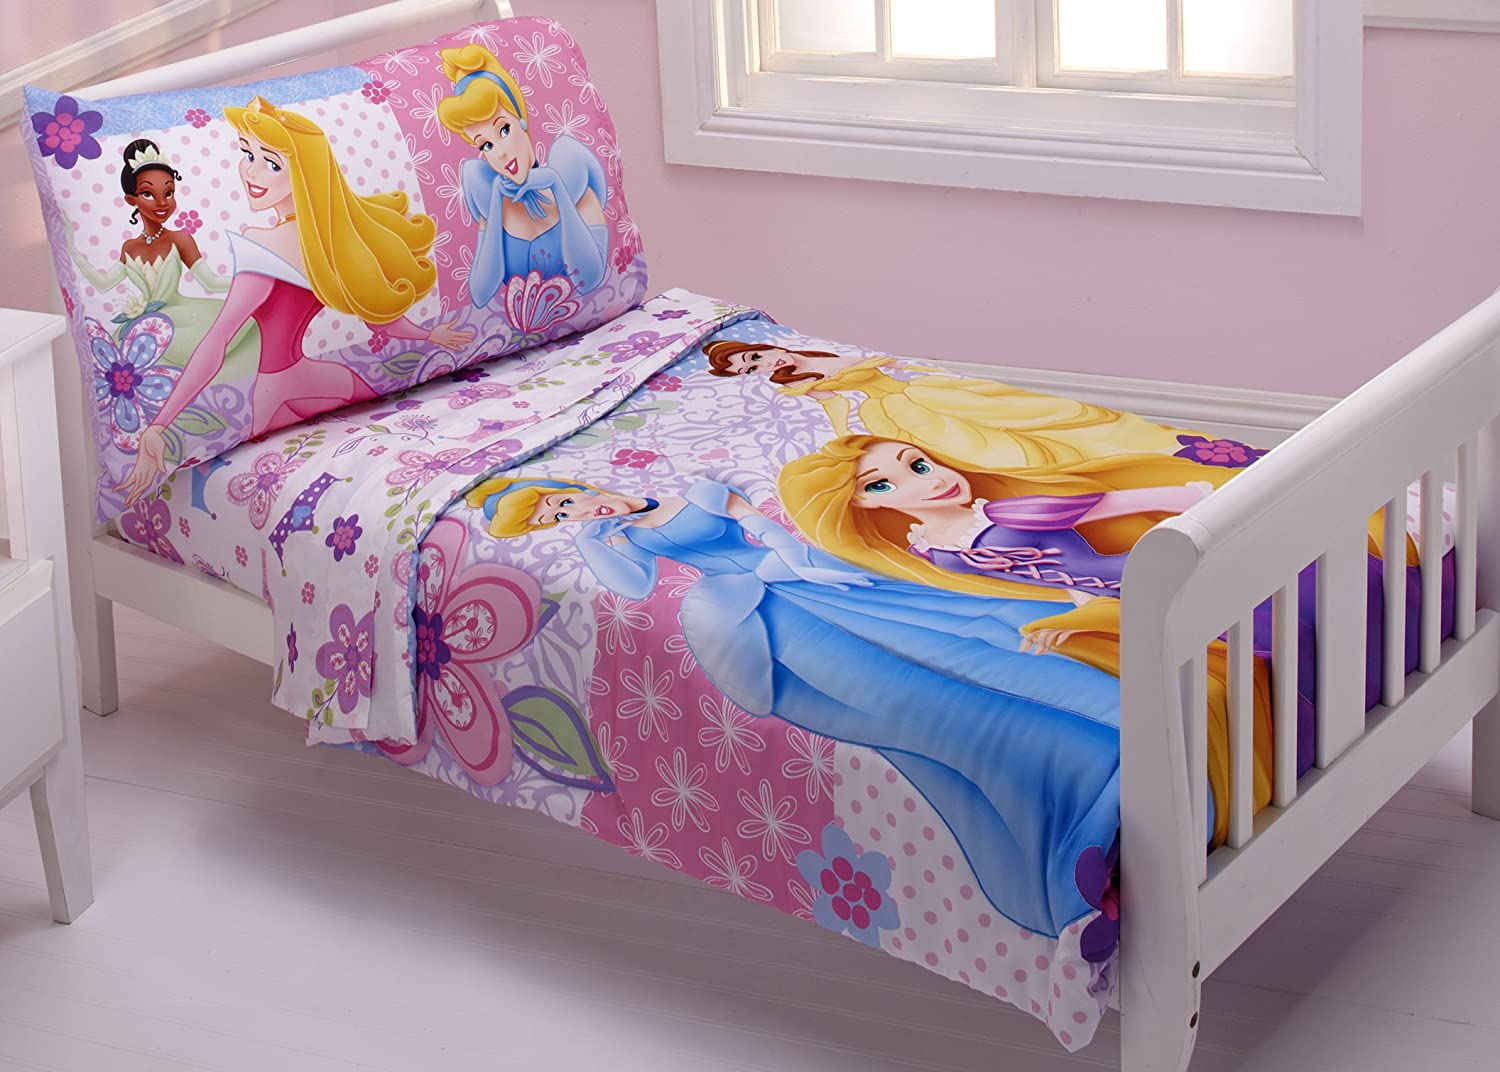 Disney princess toddler bedding 4 piece set - Amazon Com Disney 4 Piece Toddler Set Princesses Wishes And Dreams Twin Bed Comforter Sets Baby